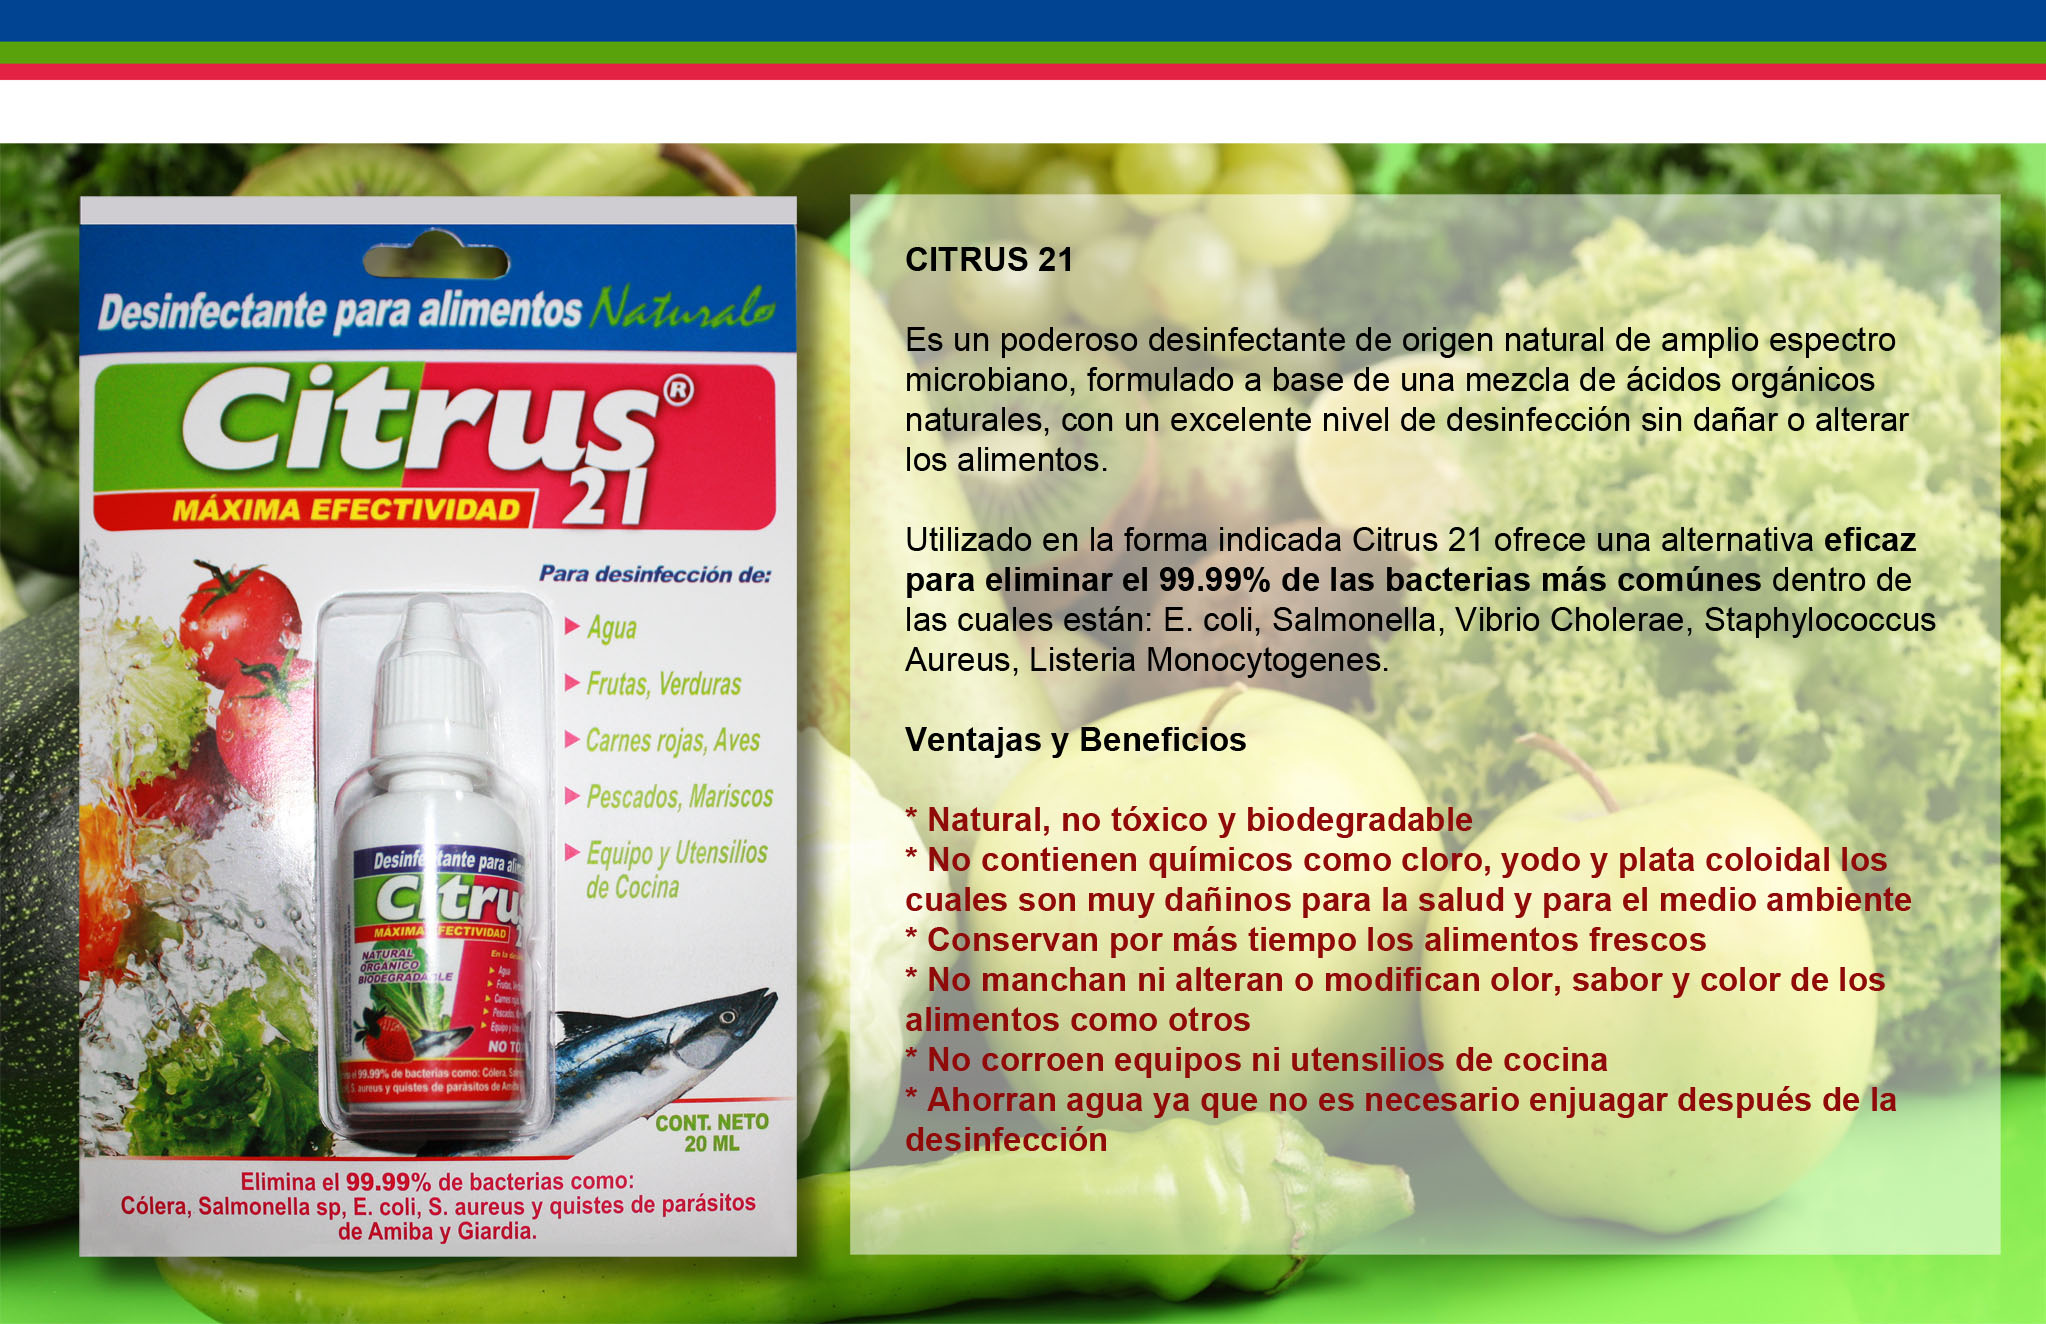 Compra Citrus 21 - Desinfectante 100% natural